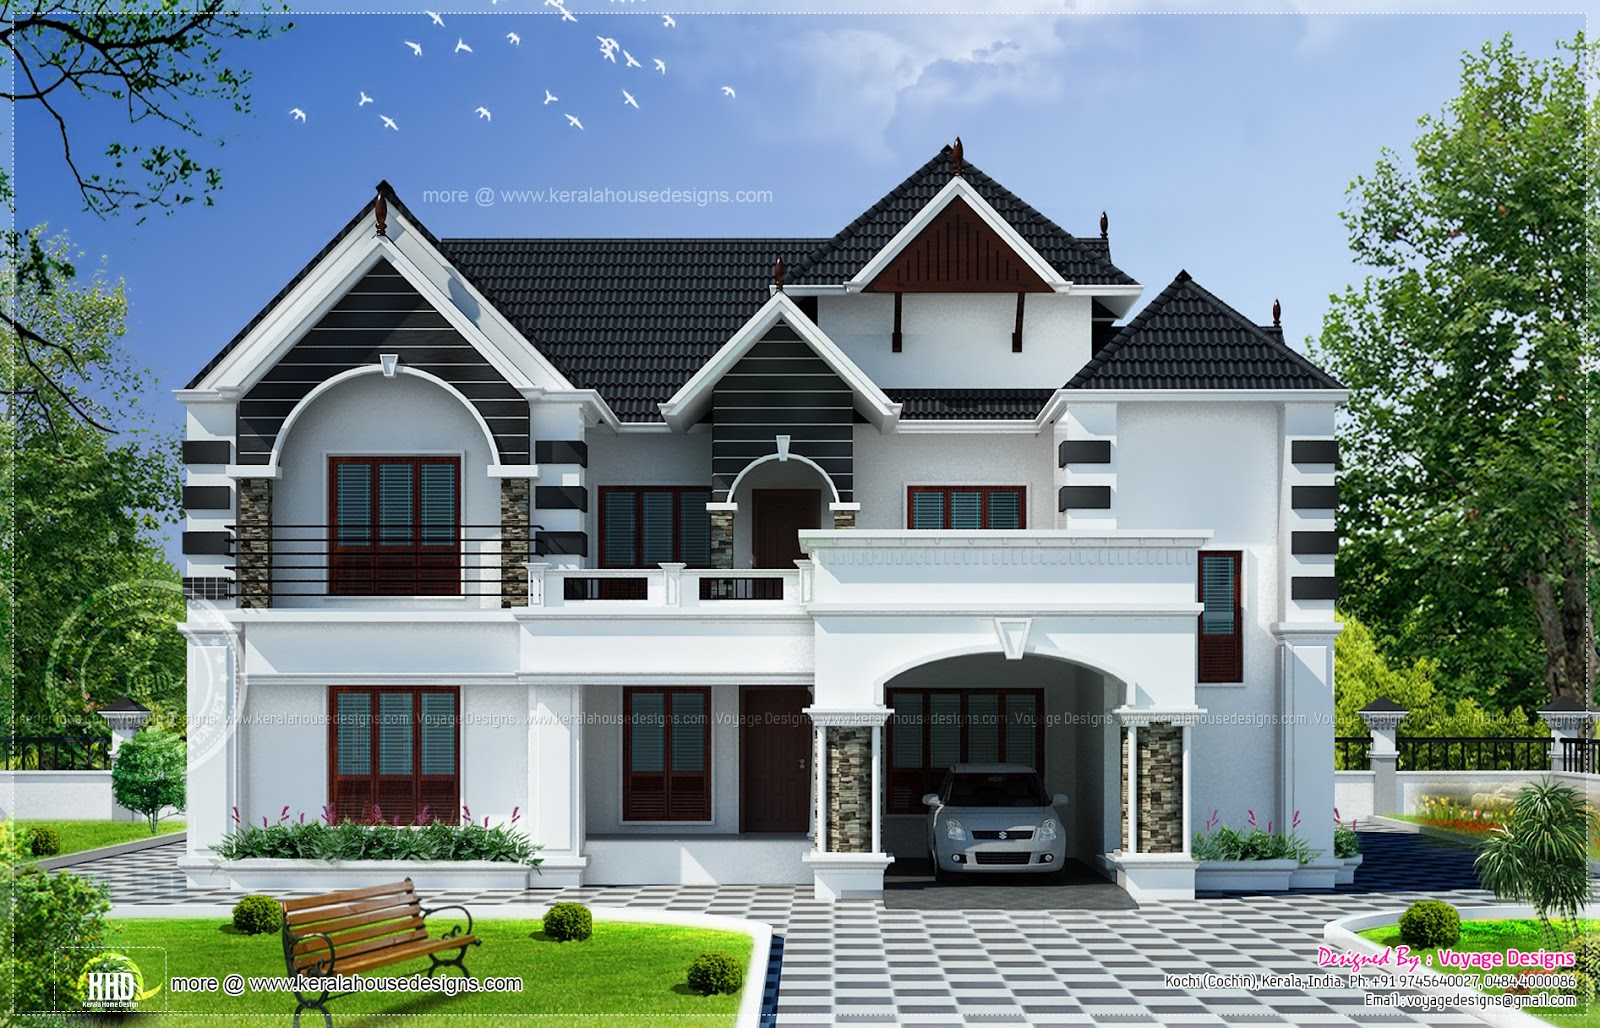 4 bedroom colonial style house kerala home design and for House plan design kerala style